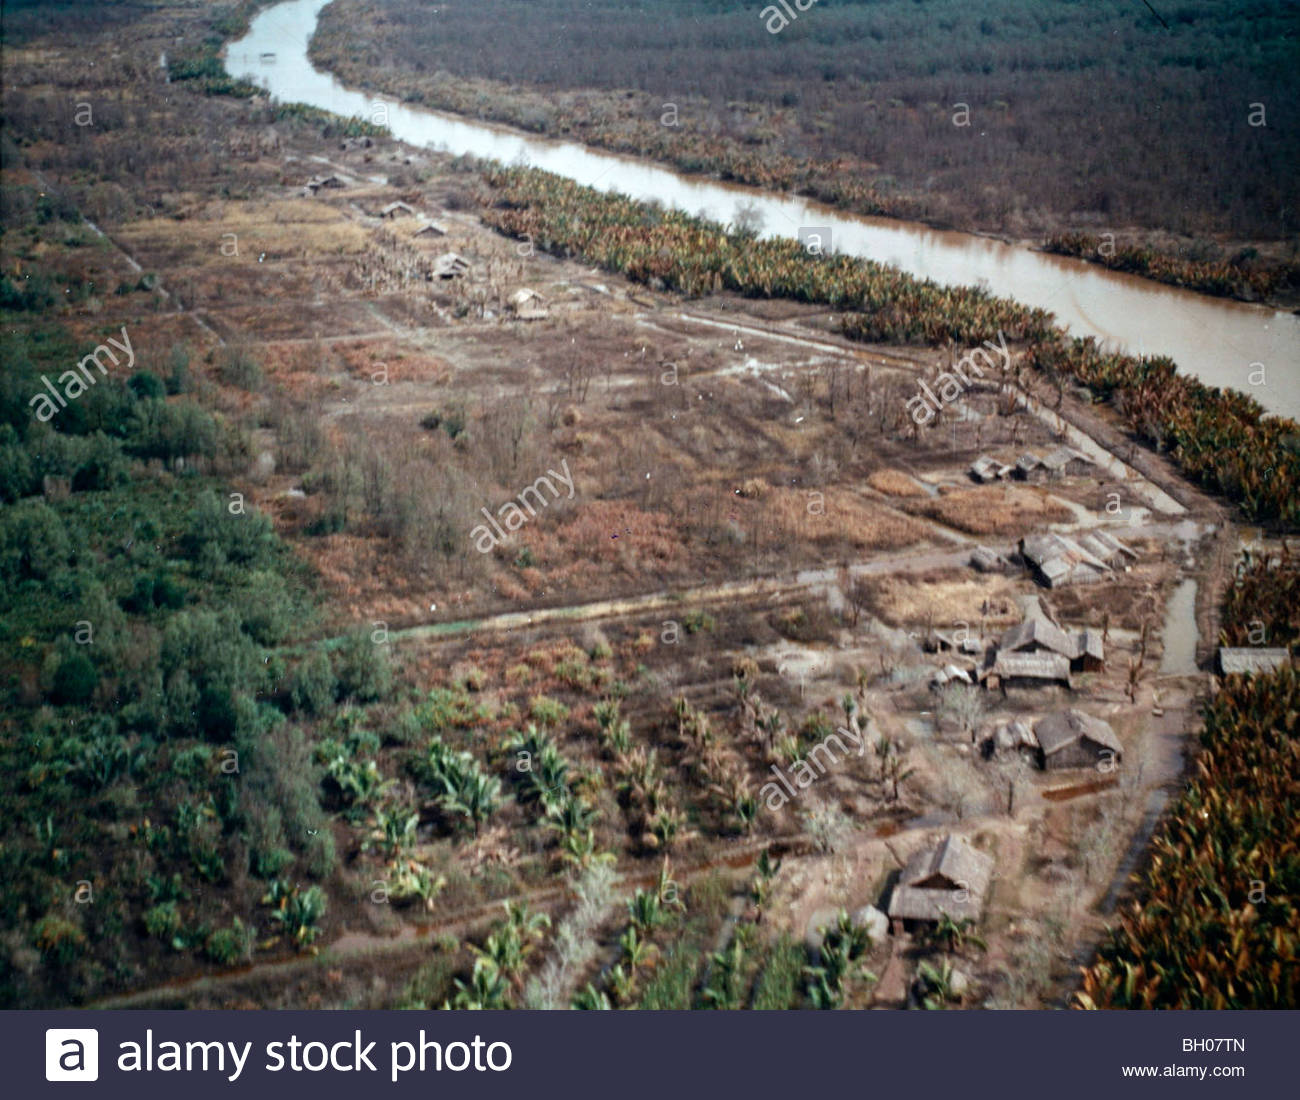 Photo depicts deterioration of vegetation, likely caused by Agent Orange or  a similar defoliant used during the Vietnam War.